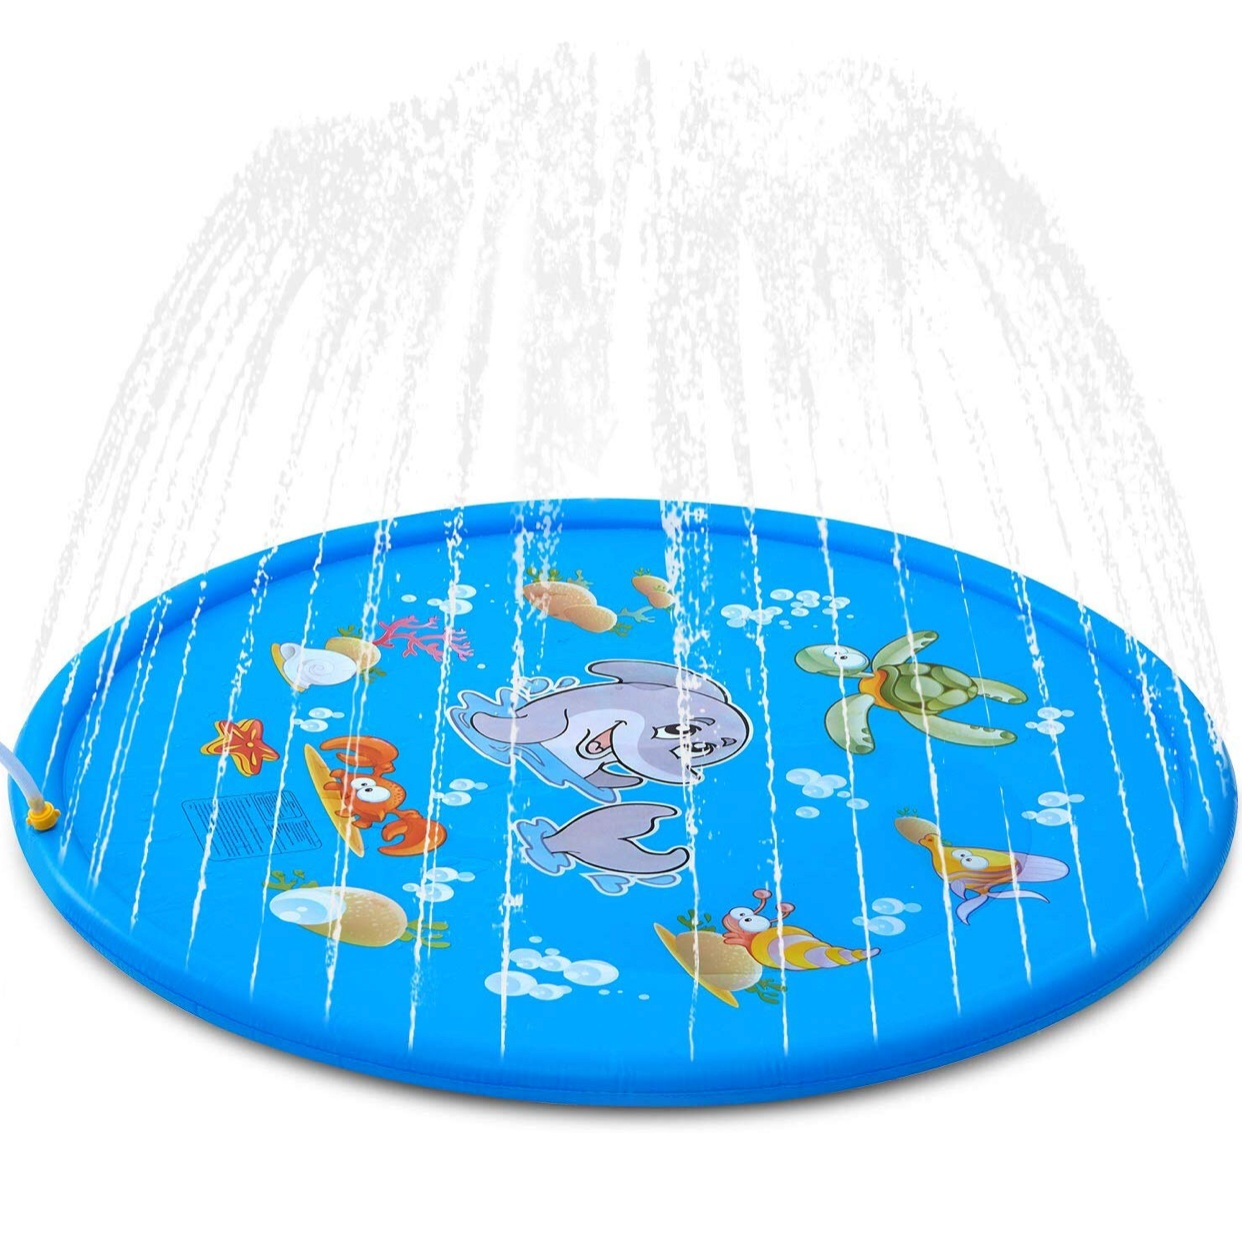 - This splash pad is only $21 and we loved it at Caleb and Caroline's birthday party!Find it here.